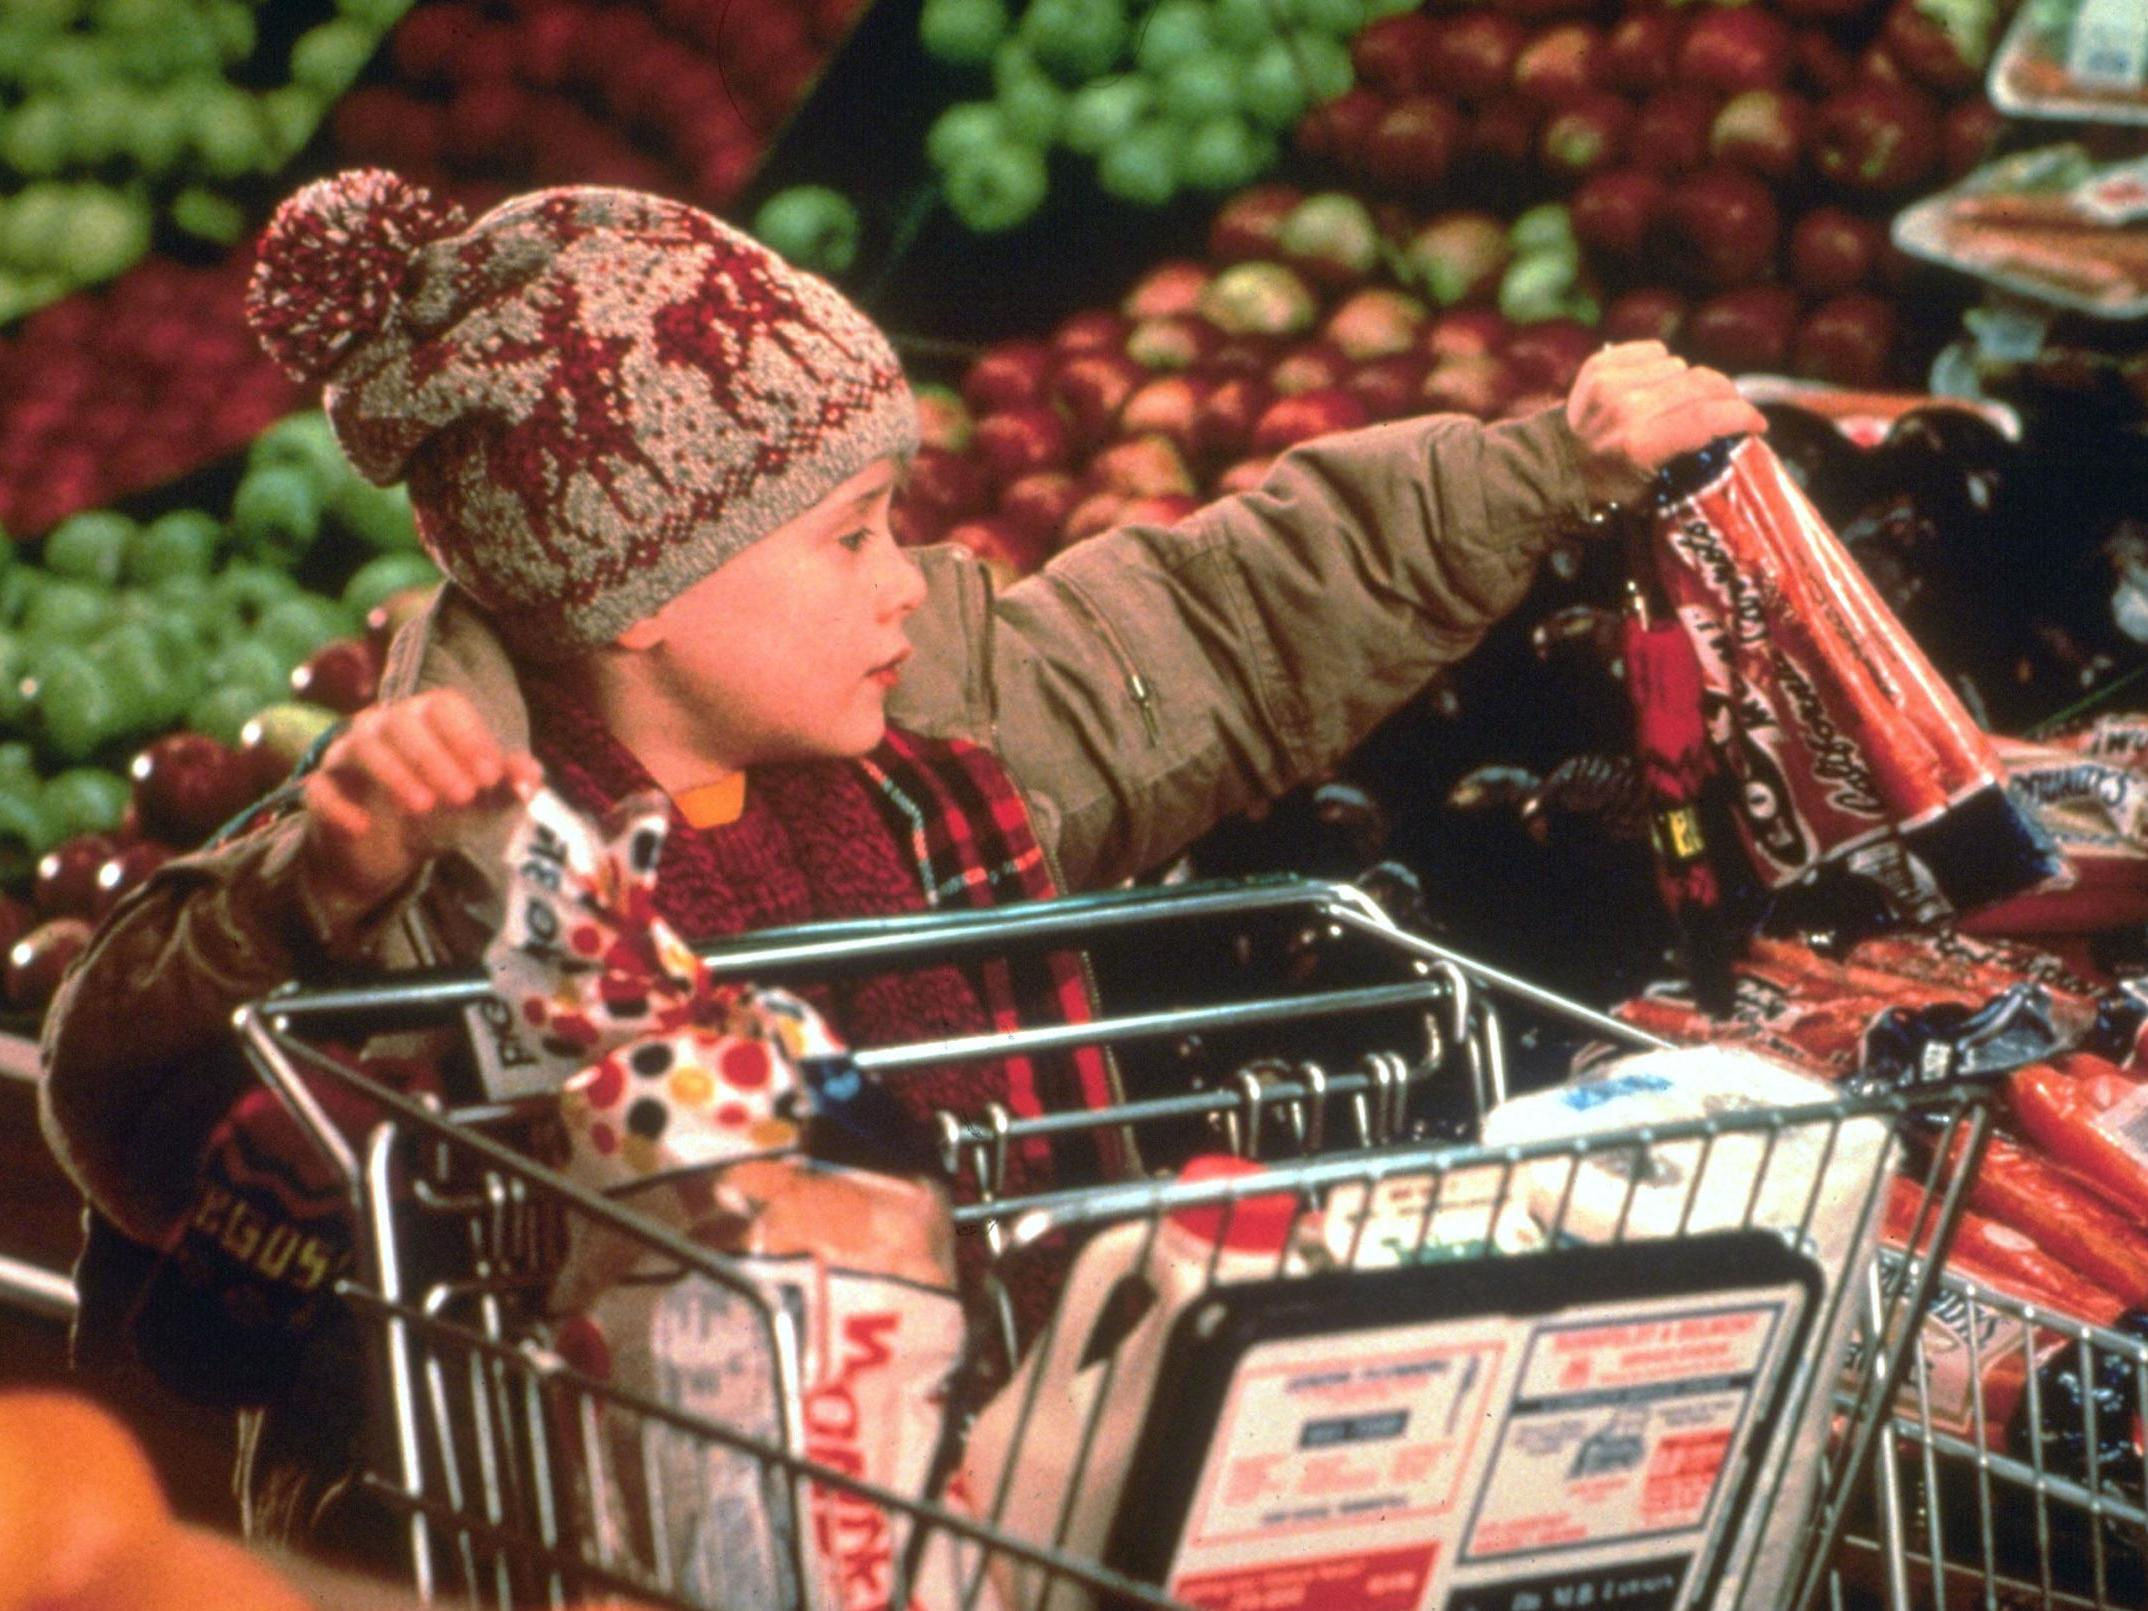 Christmas opening times for Tesco, Sainsbury's, Aldi and Lidl, including New Year | The IndependentShape